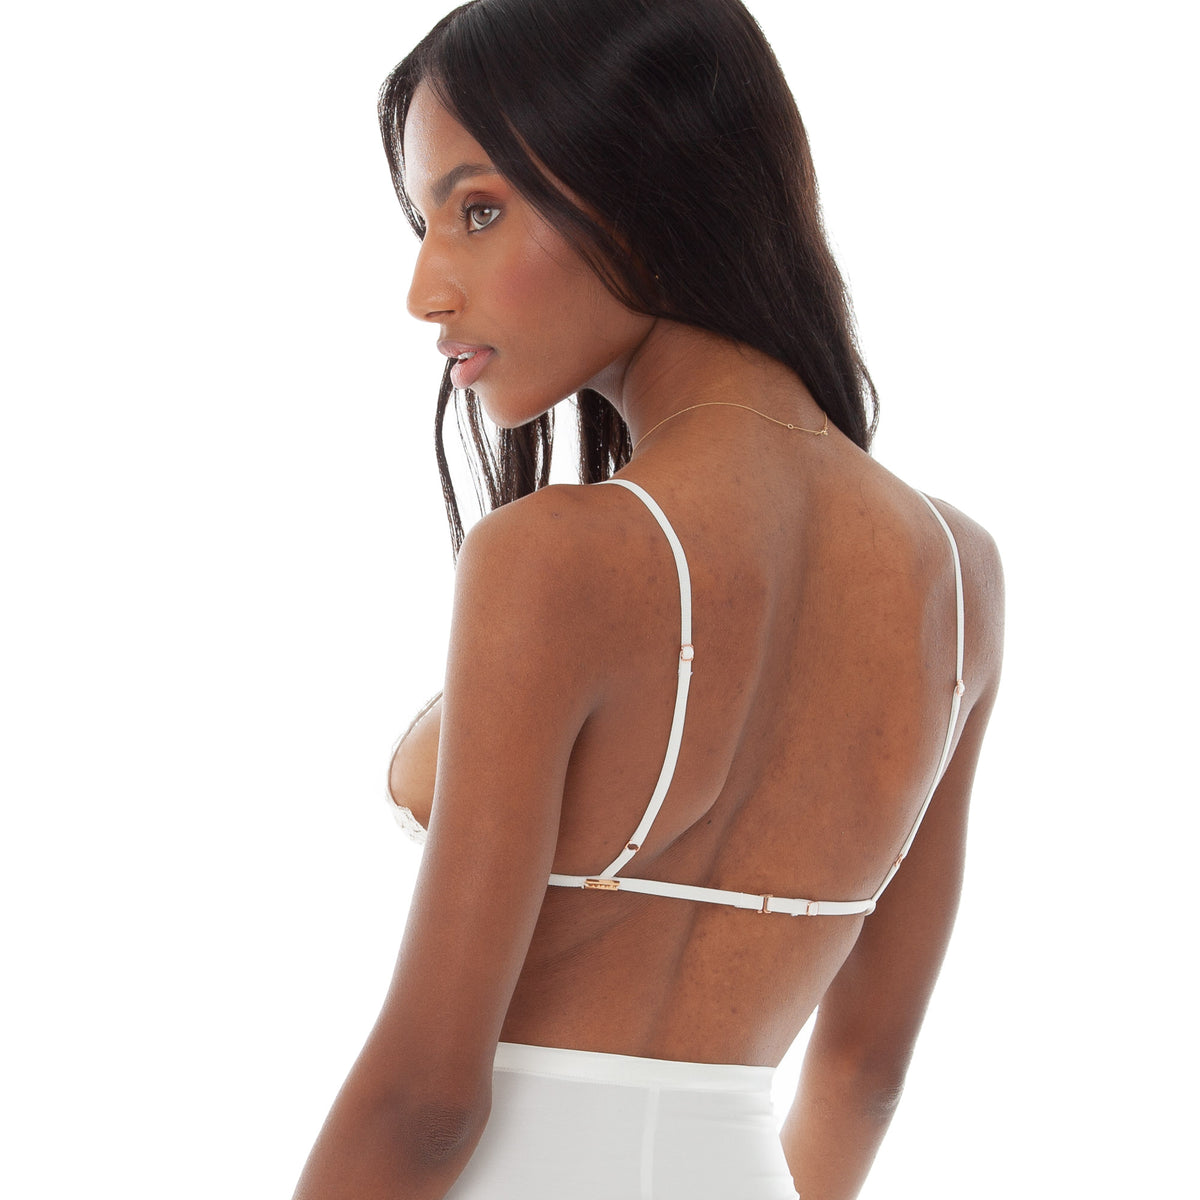 Are You Am I - Sylph Lace Bra **white